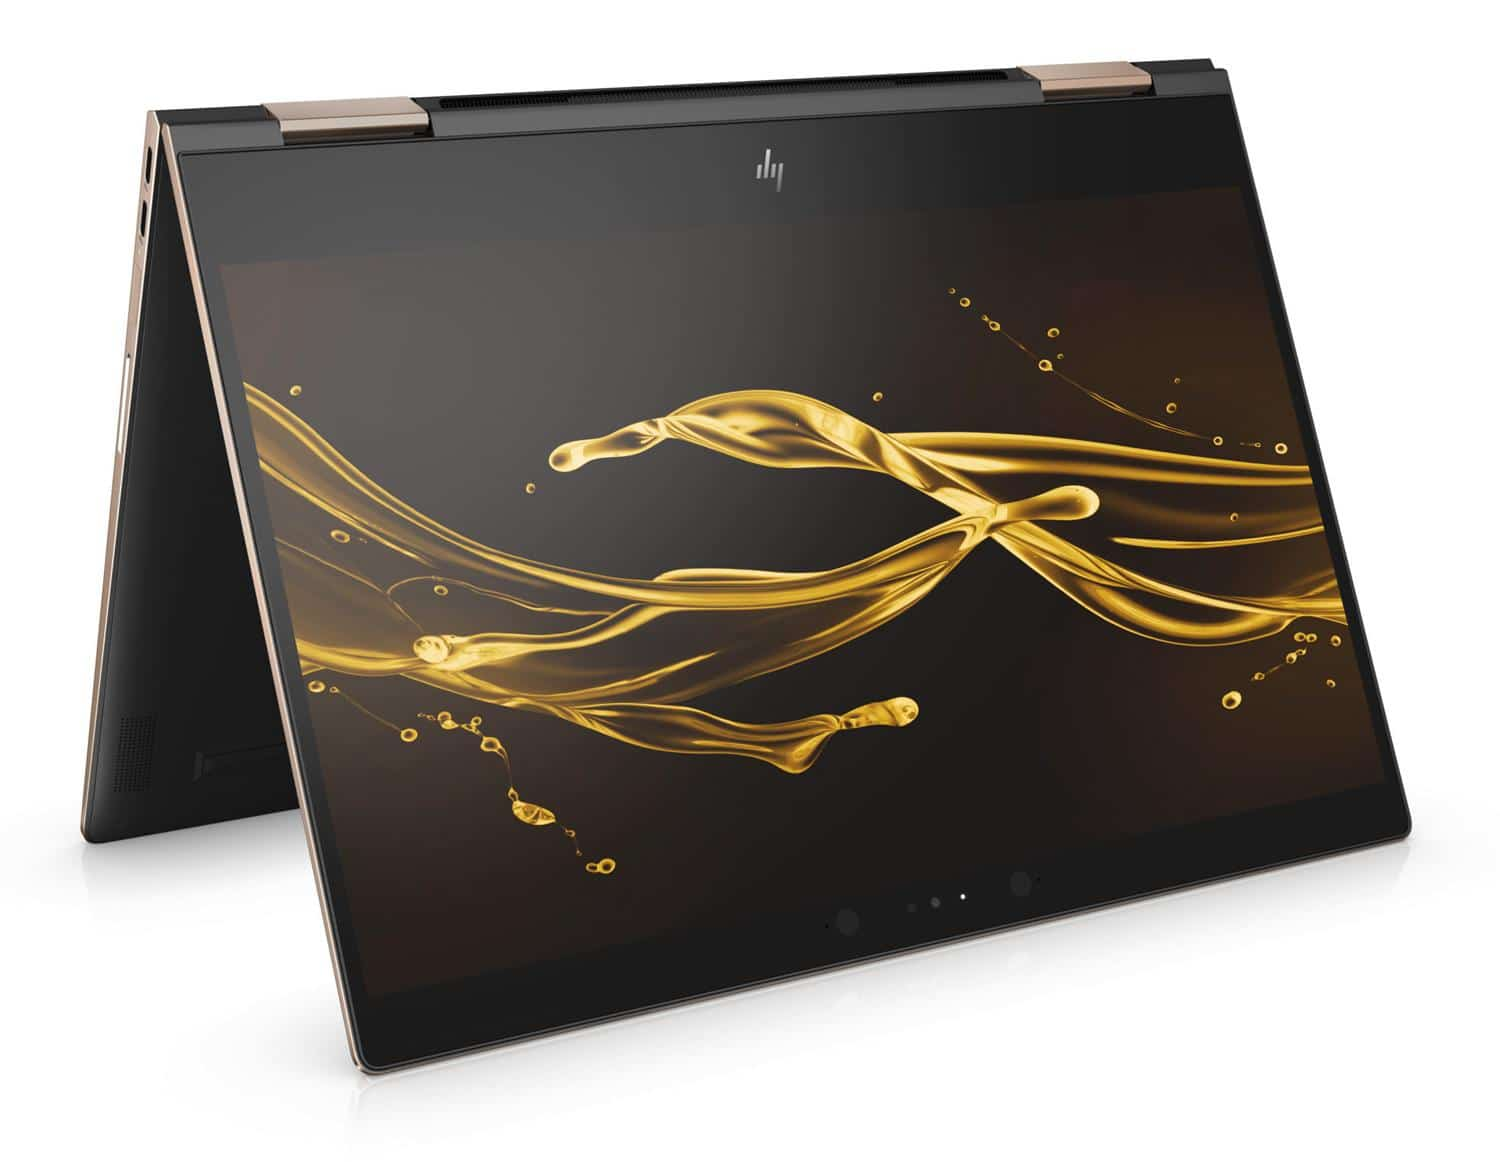 "HP Spectre x360 13-ae006nf, ultrabook 13"" Tablette 16Go SSD512 i7 Refresh 1519€"